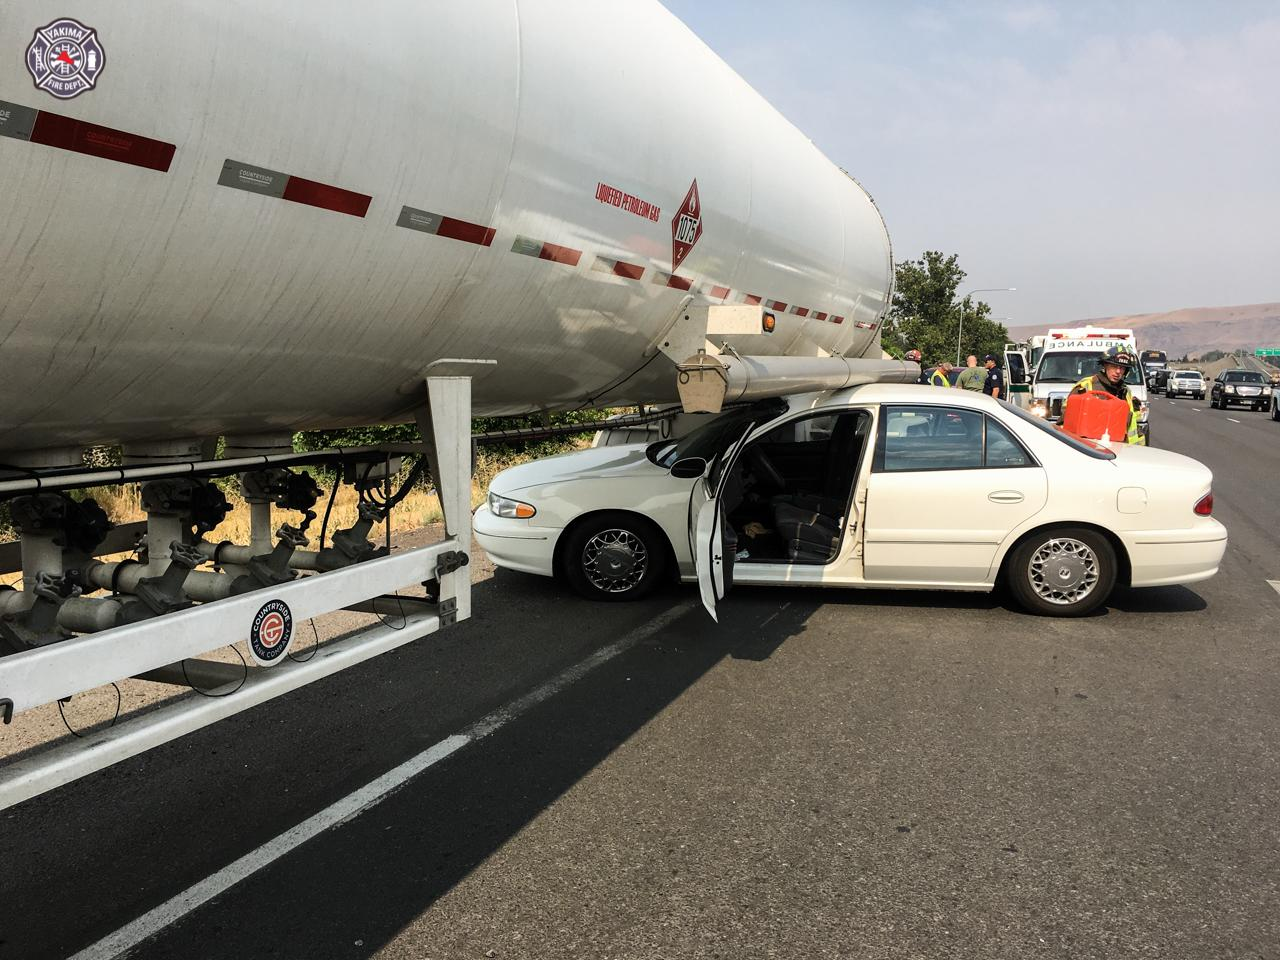 Car becomes lodged under semi, both occupants uninjured